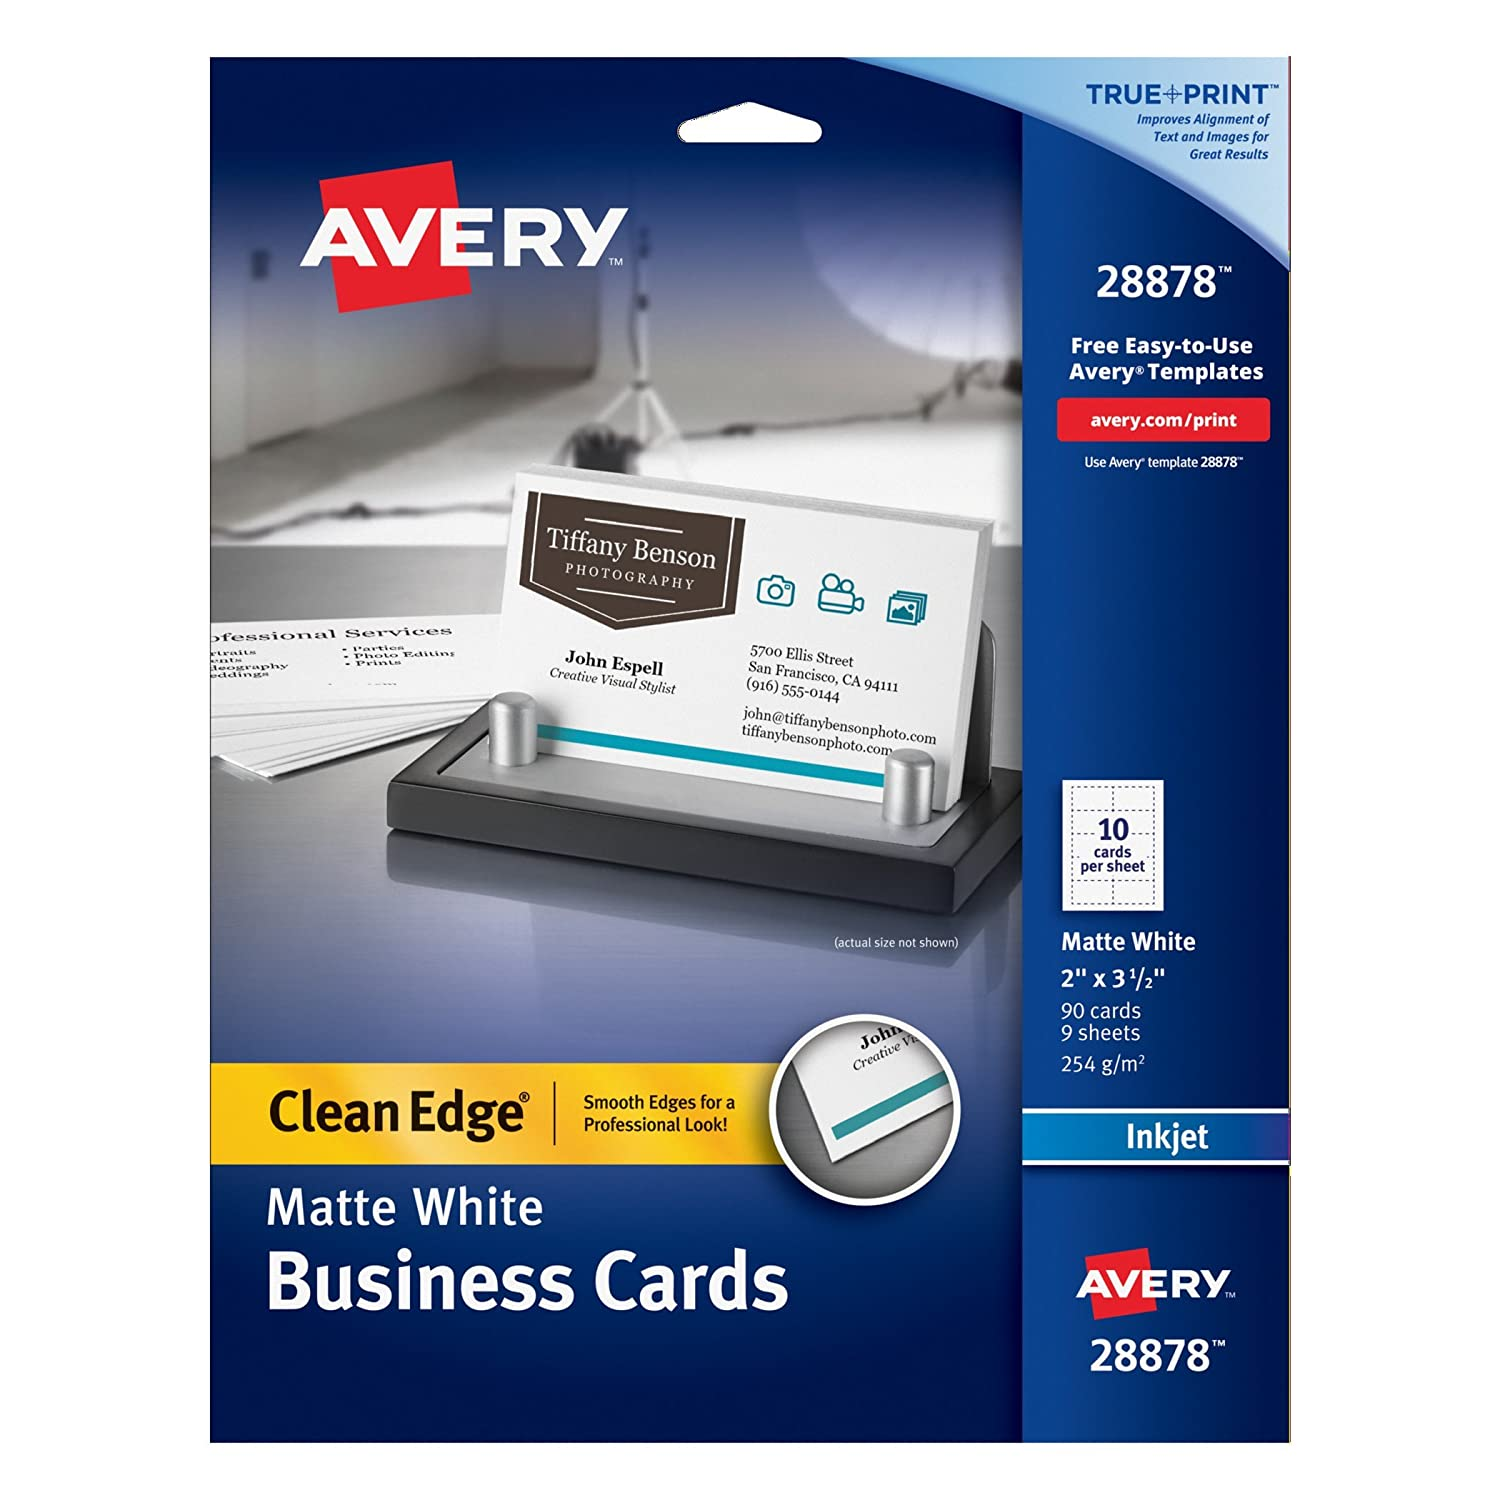 Amazoncom Avery Clean Edge Business Cards Inches X - Business card templates avery